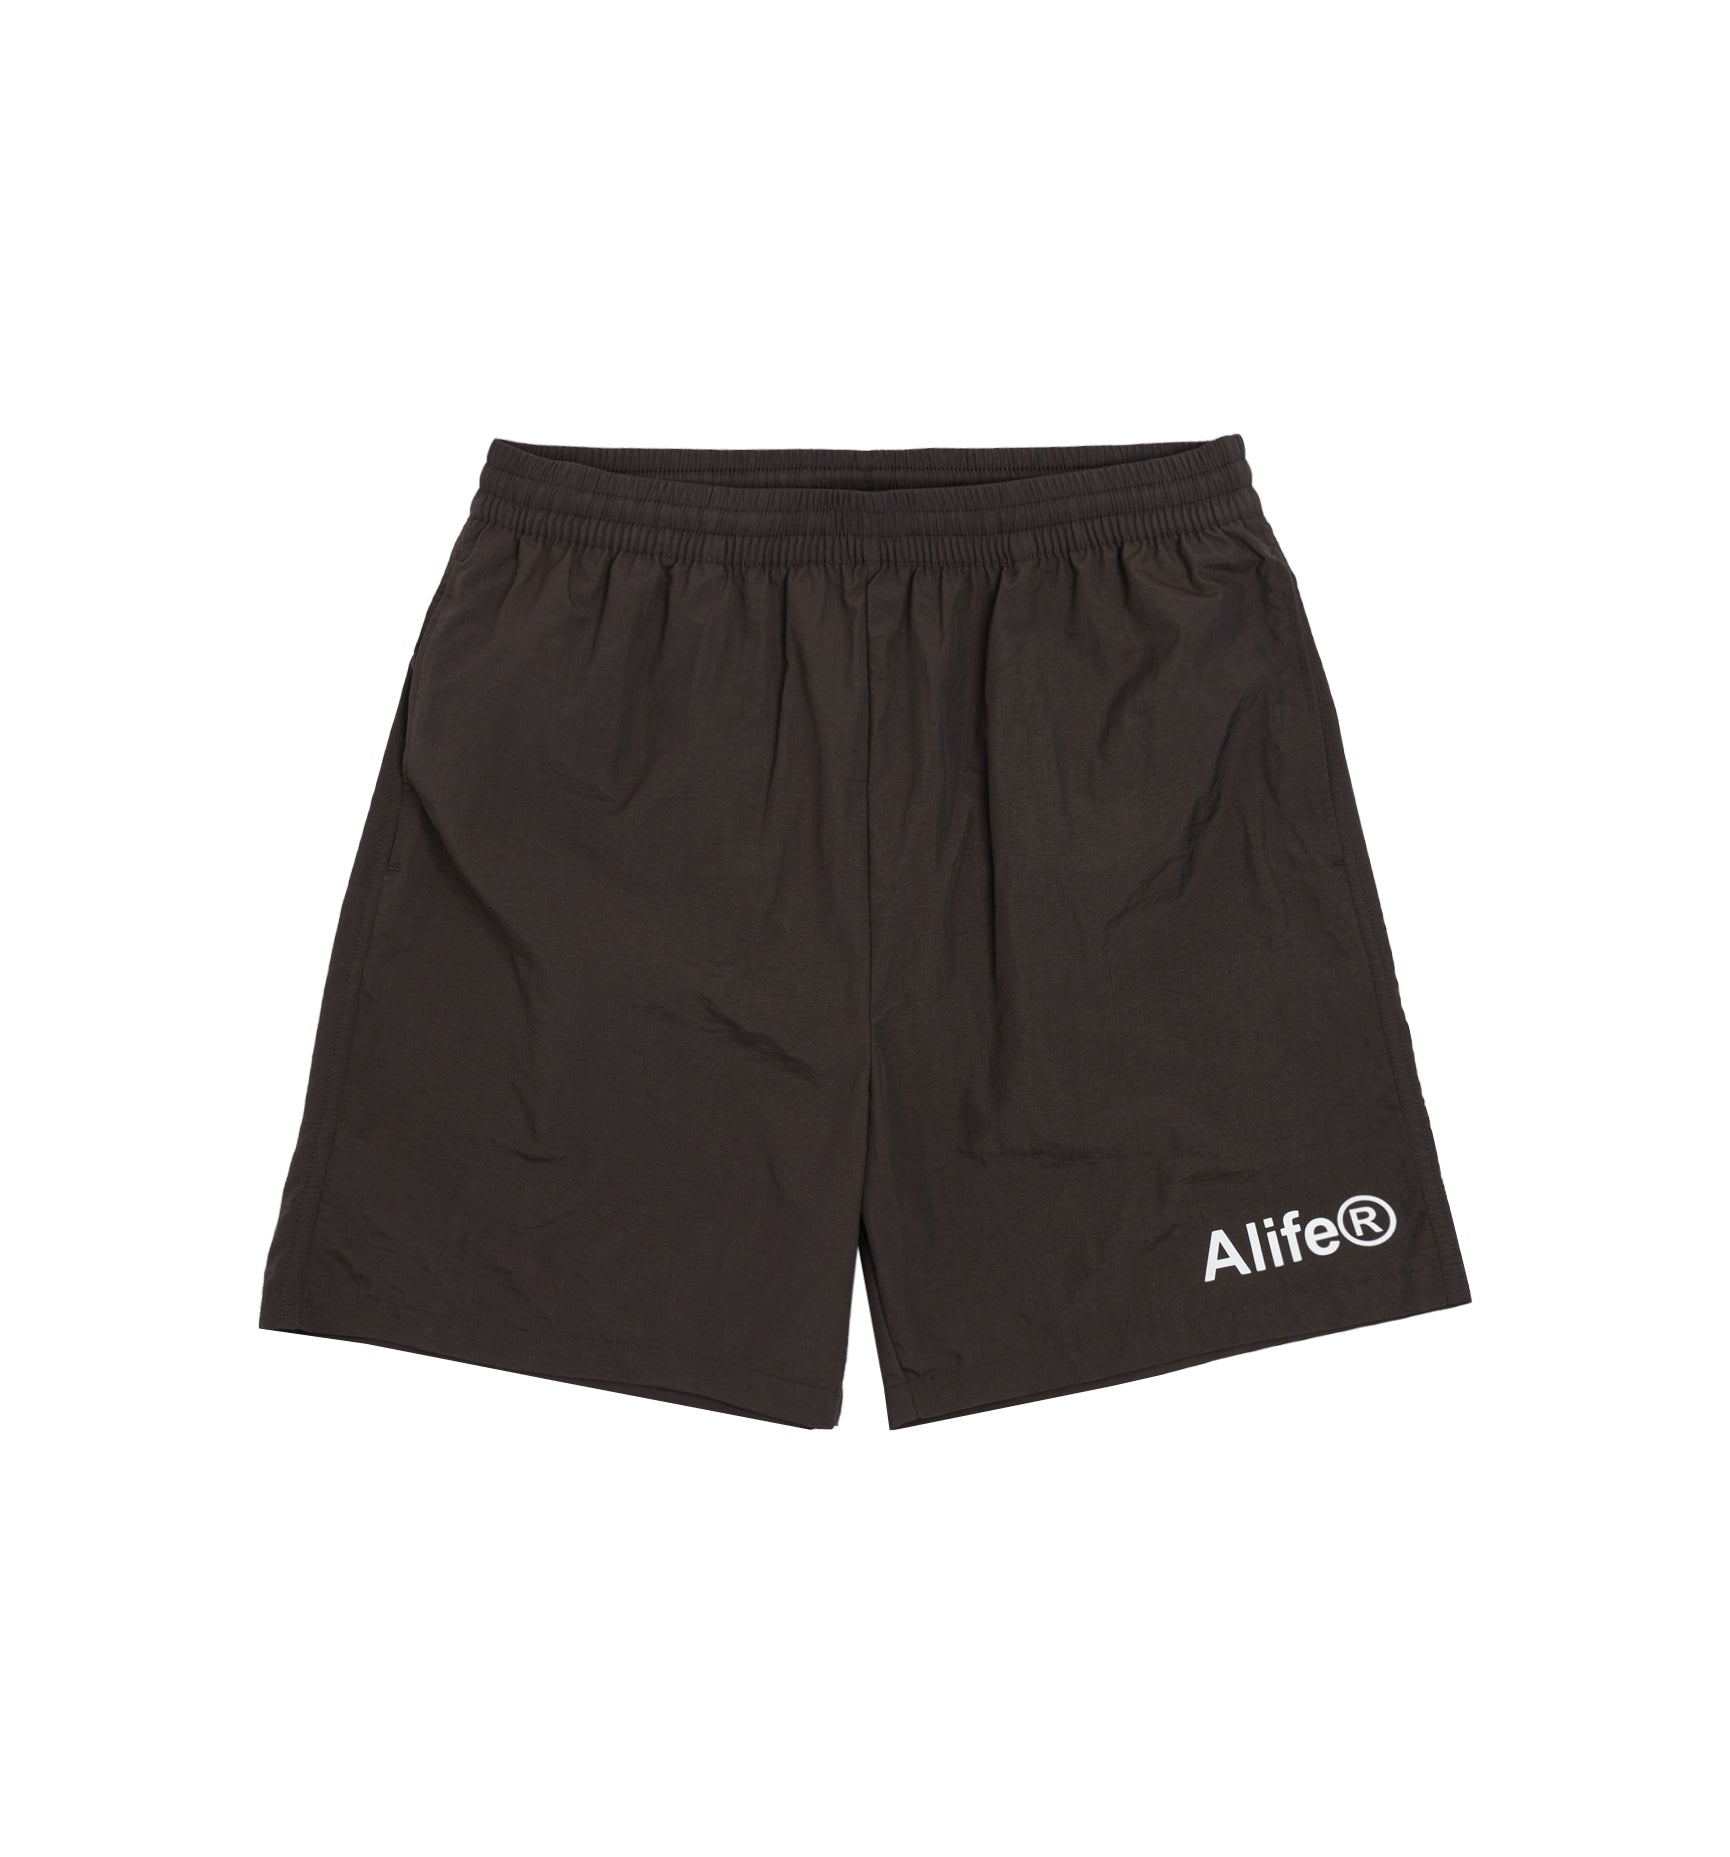 Alife Swim/Run Nylon Short - Brown